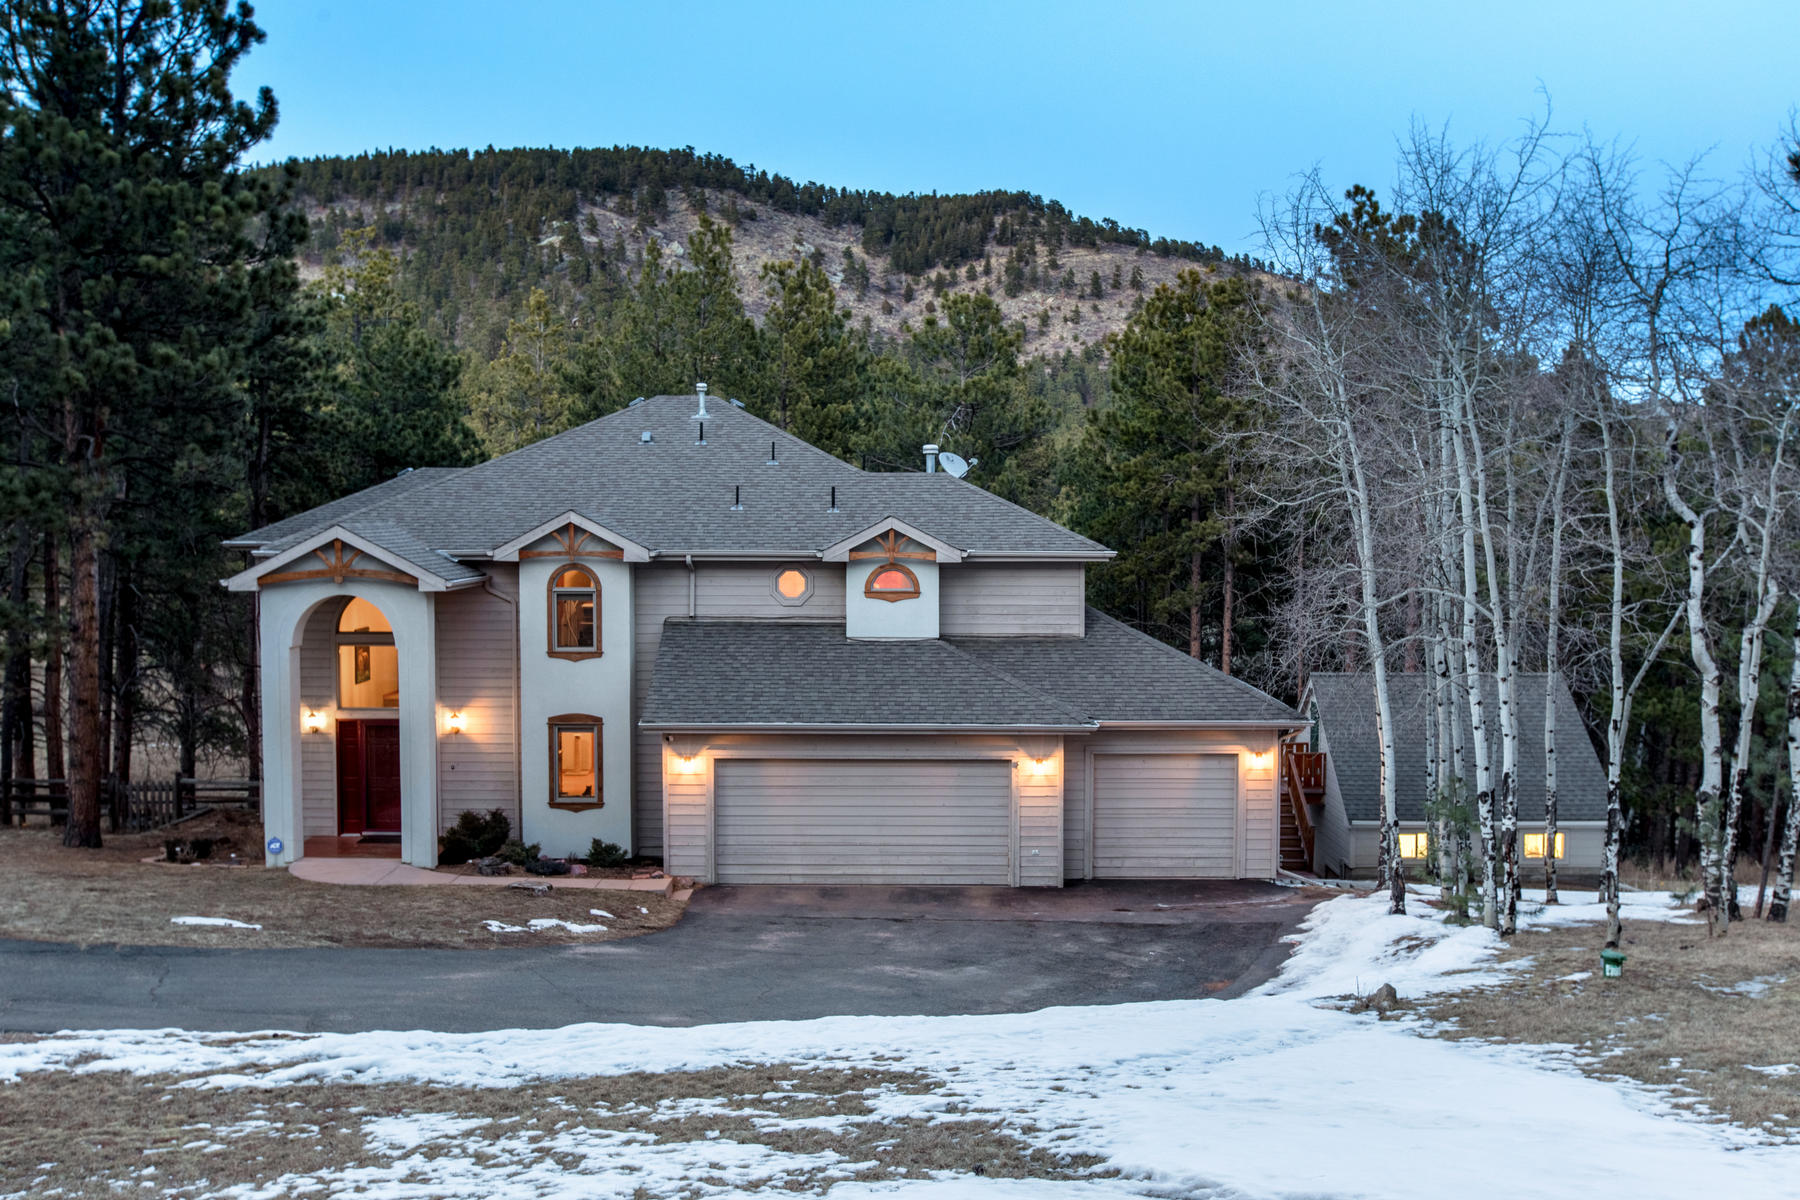 Single Family Home for Sale at Beautiful Mountain Contemporary Home on 1.5 Acres 46 Greystone Trail, Evergreen, Colorado, 80439 United States